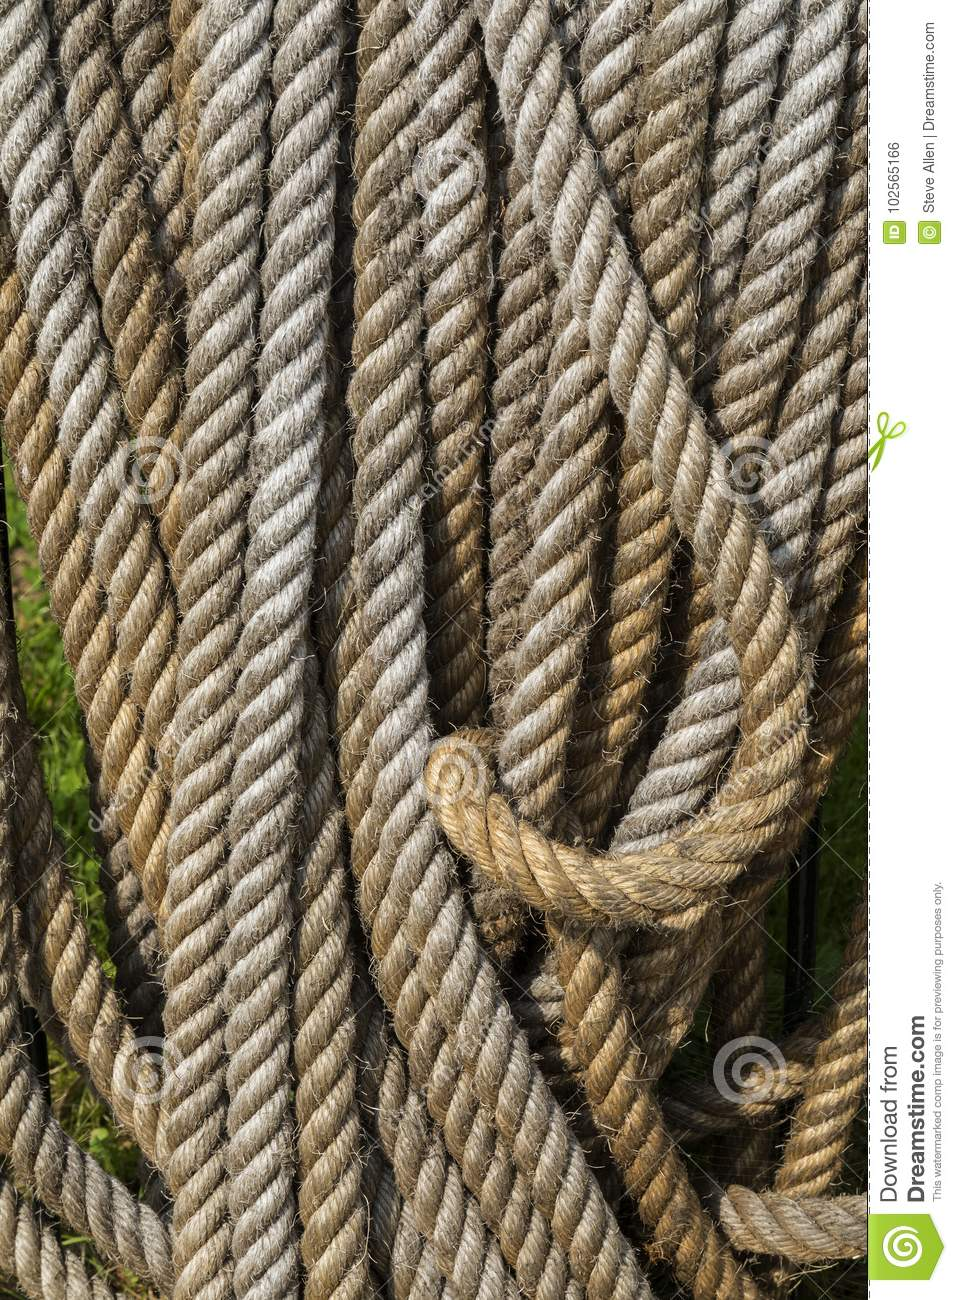 88510042c5f4 Coil of a traditional type of rope - made by twisting together strands of  hemp or sisal - in a harbor in Zuiderzee in the Netherlands.